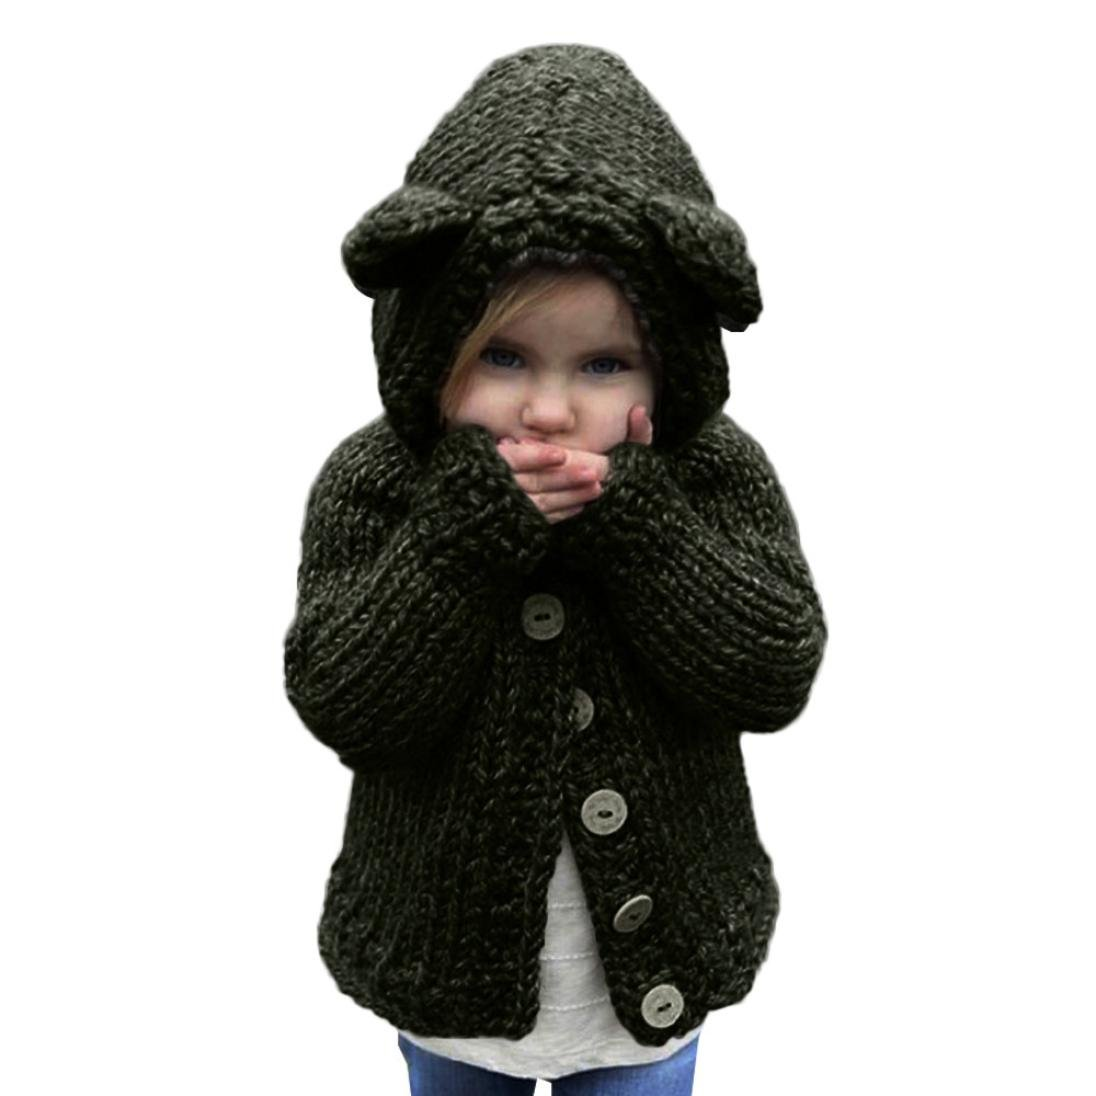 Toddler Little Girls Sweater Hooded Knit Pullovers Cardigan Warm Coat Clothes (3Years, Army Green)